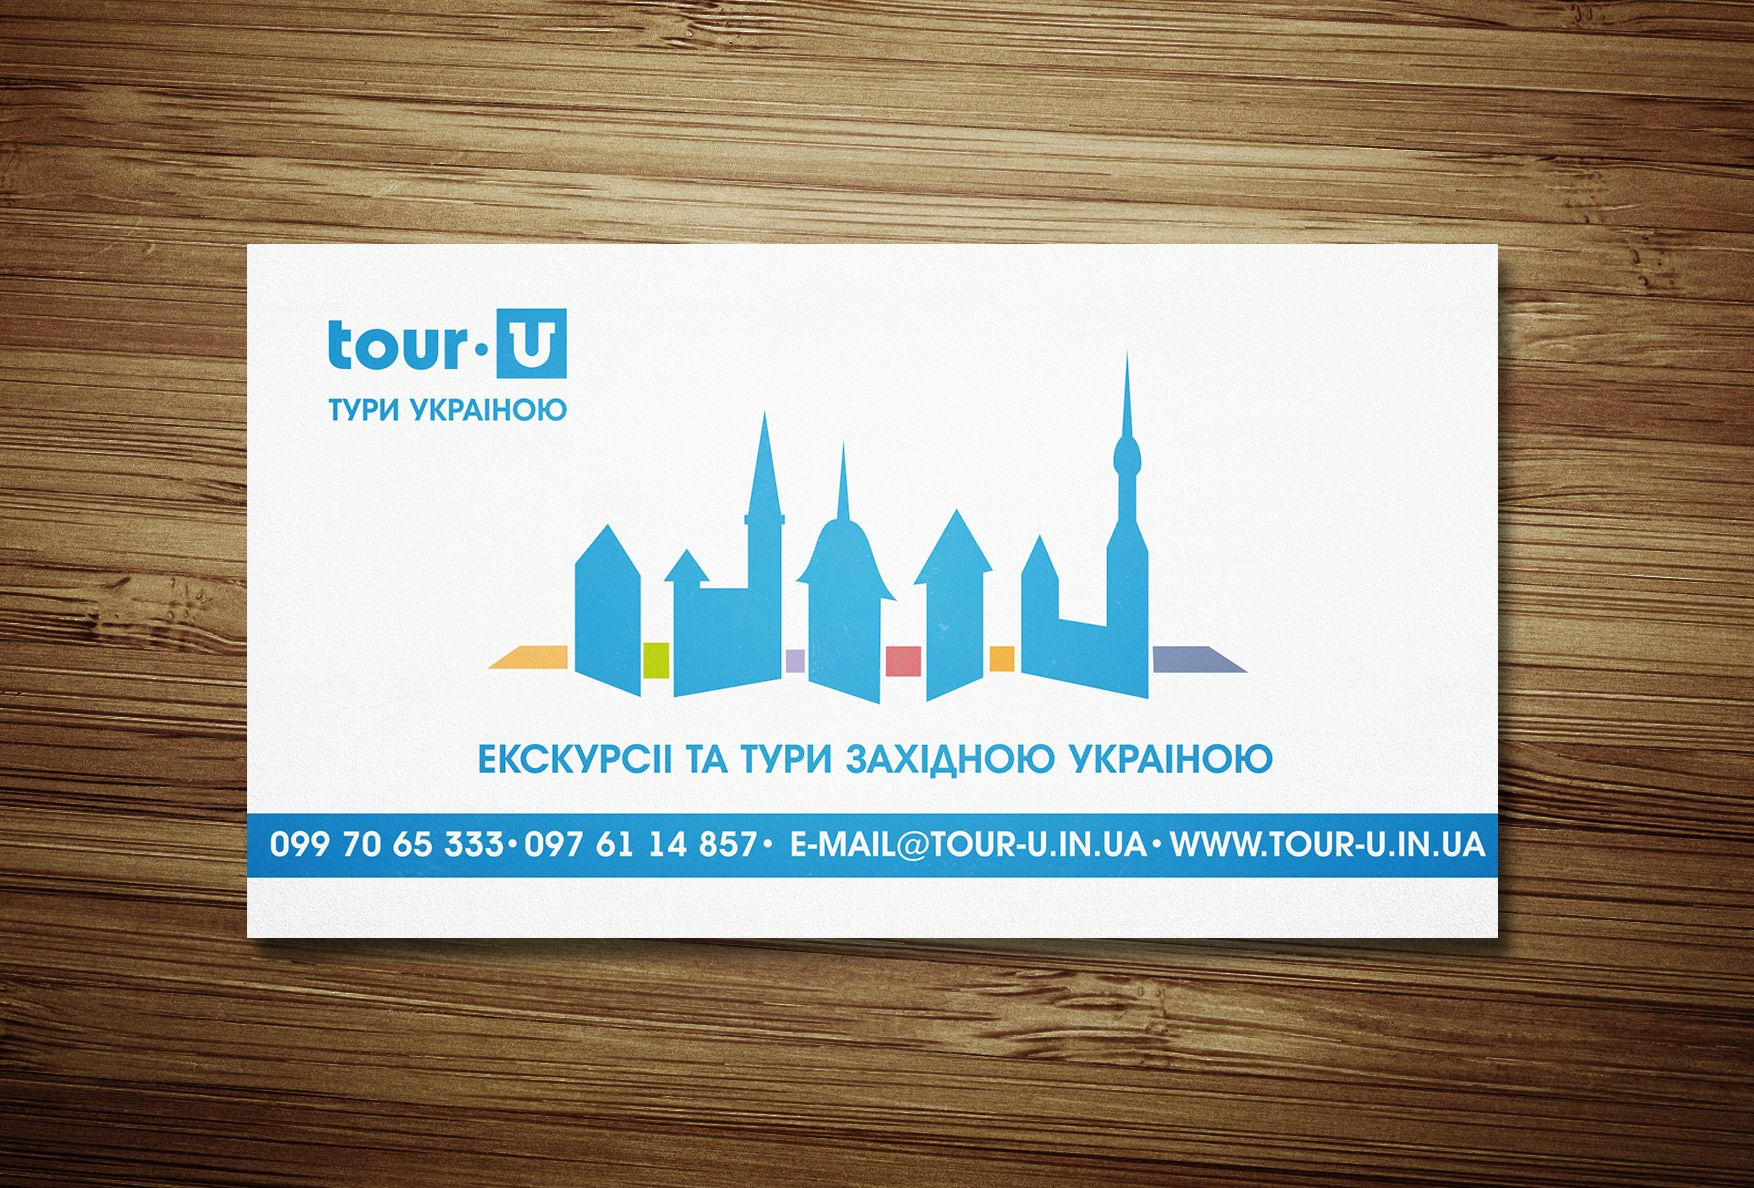 business cards design for travel agency tour